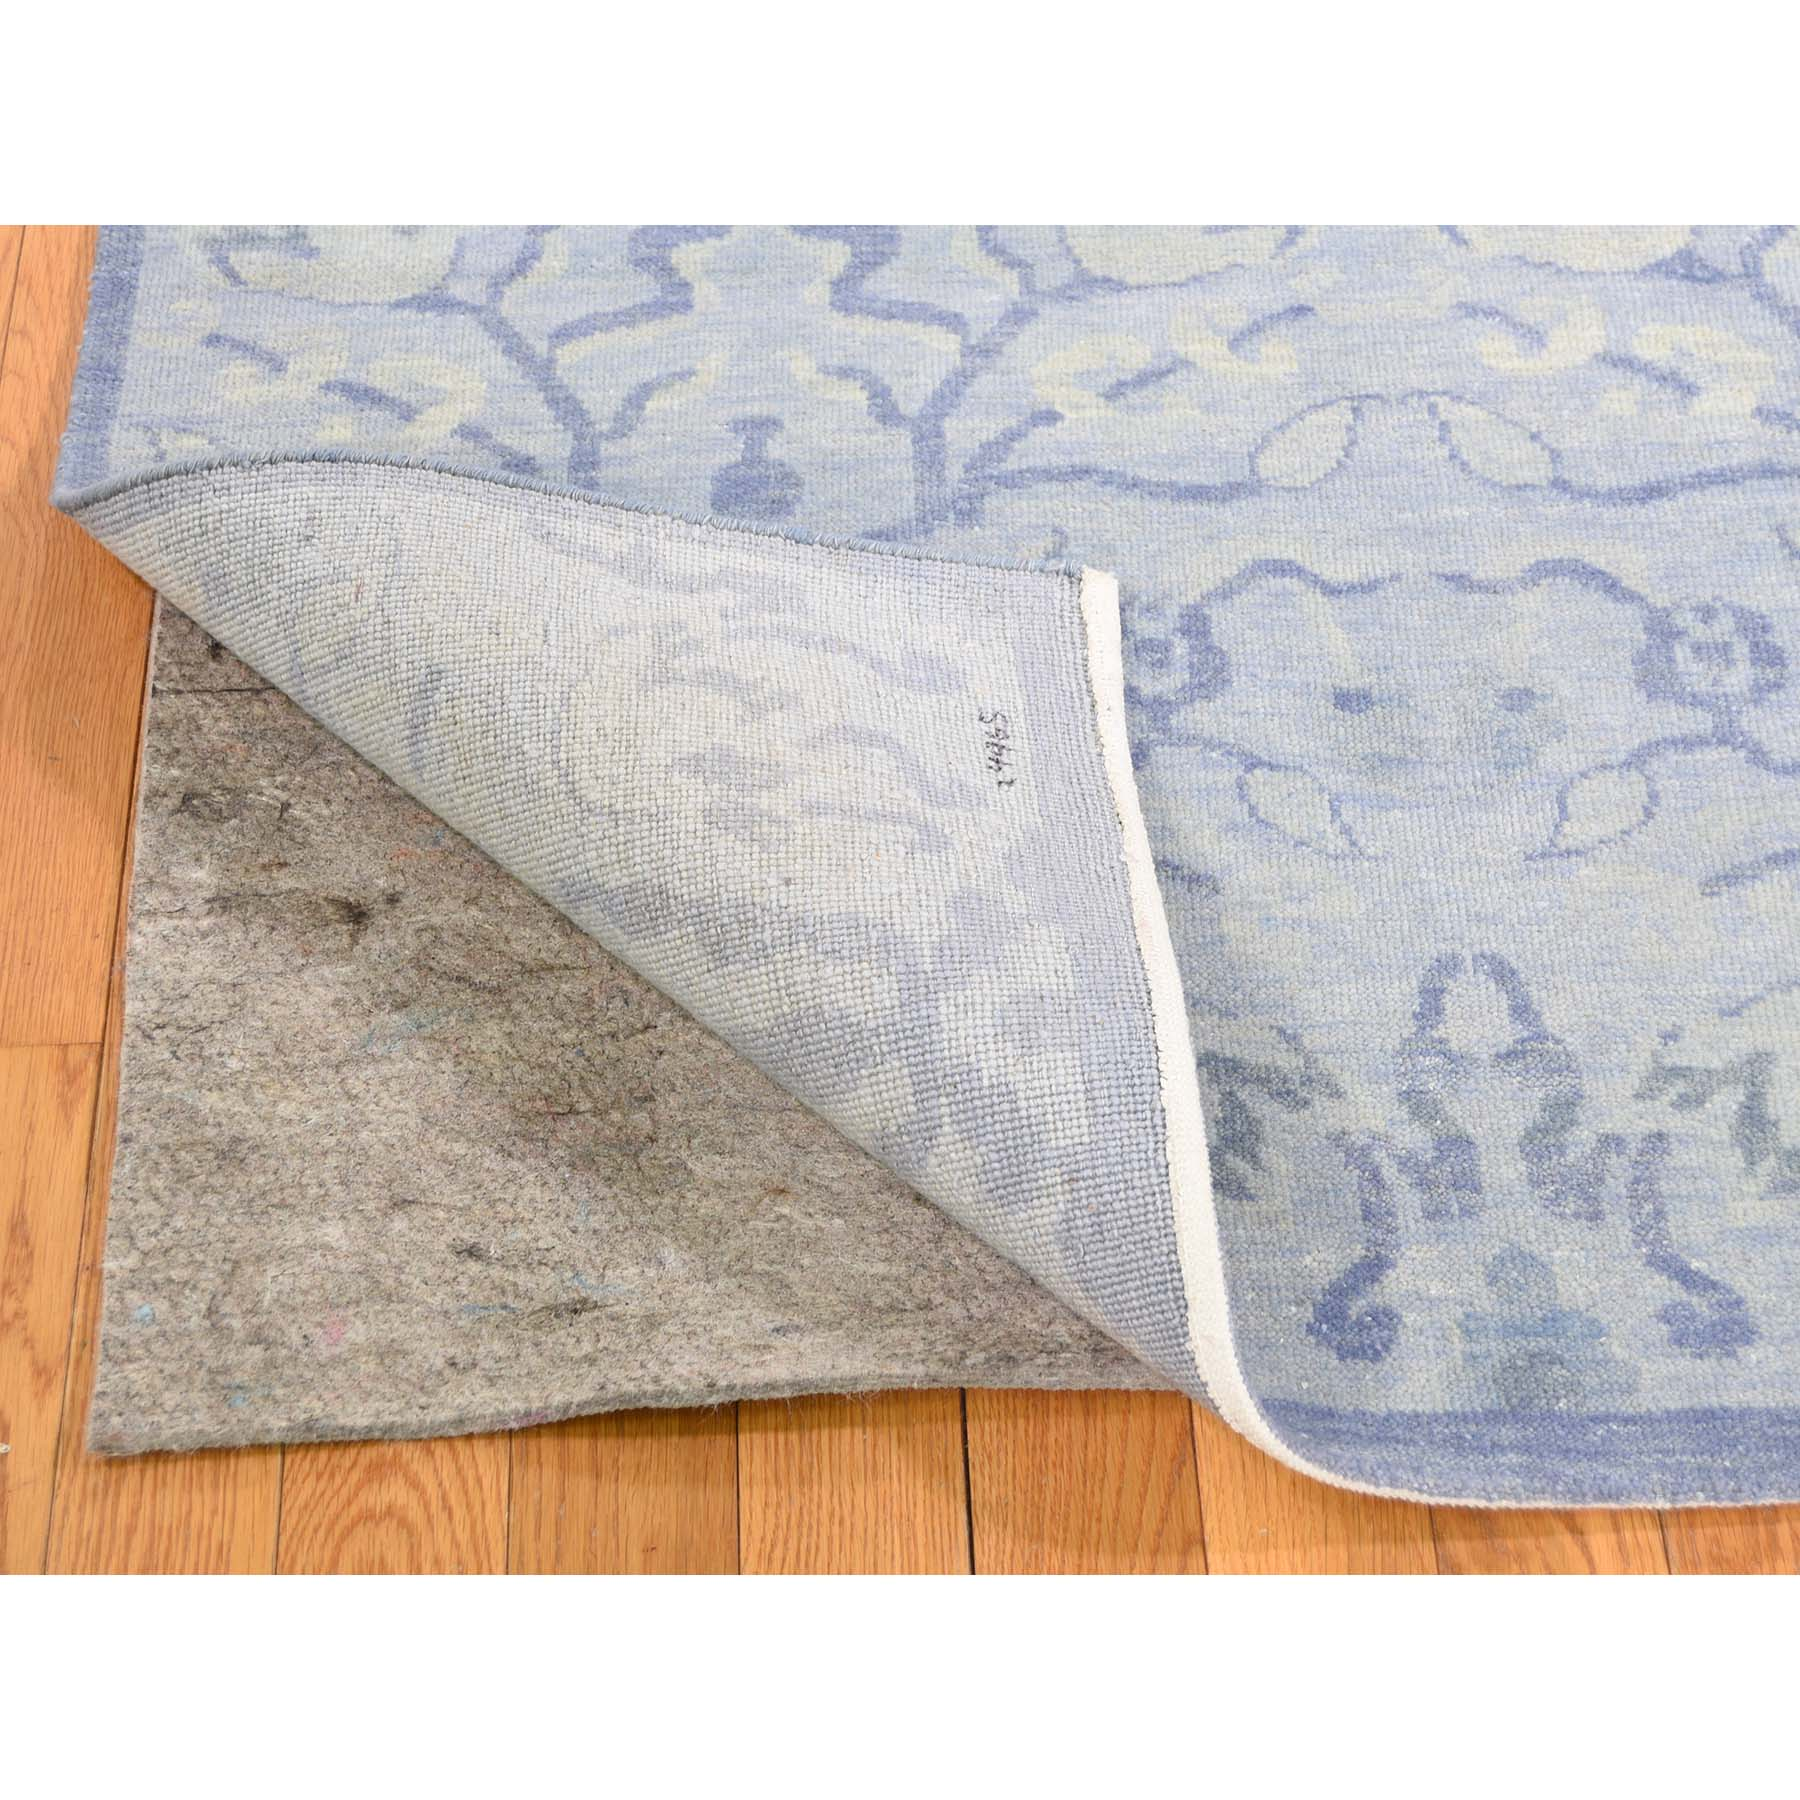 8-x9-10  Modern Light Blue Tone on Tone Pure Wool Hand-Knotted Oriental Rug